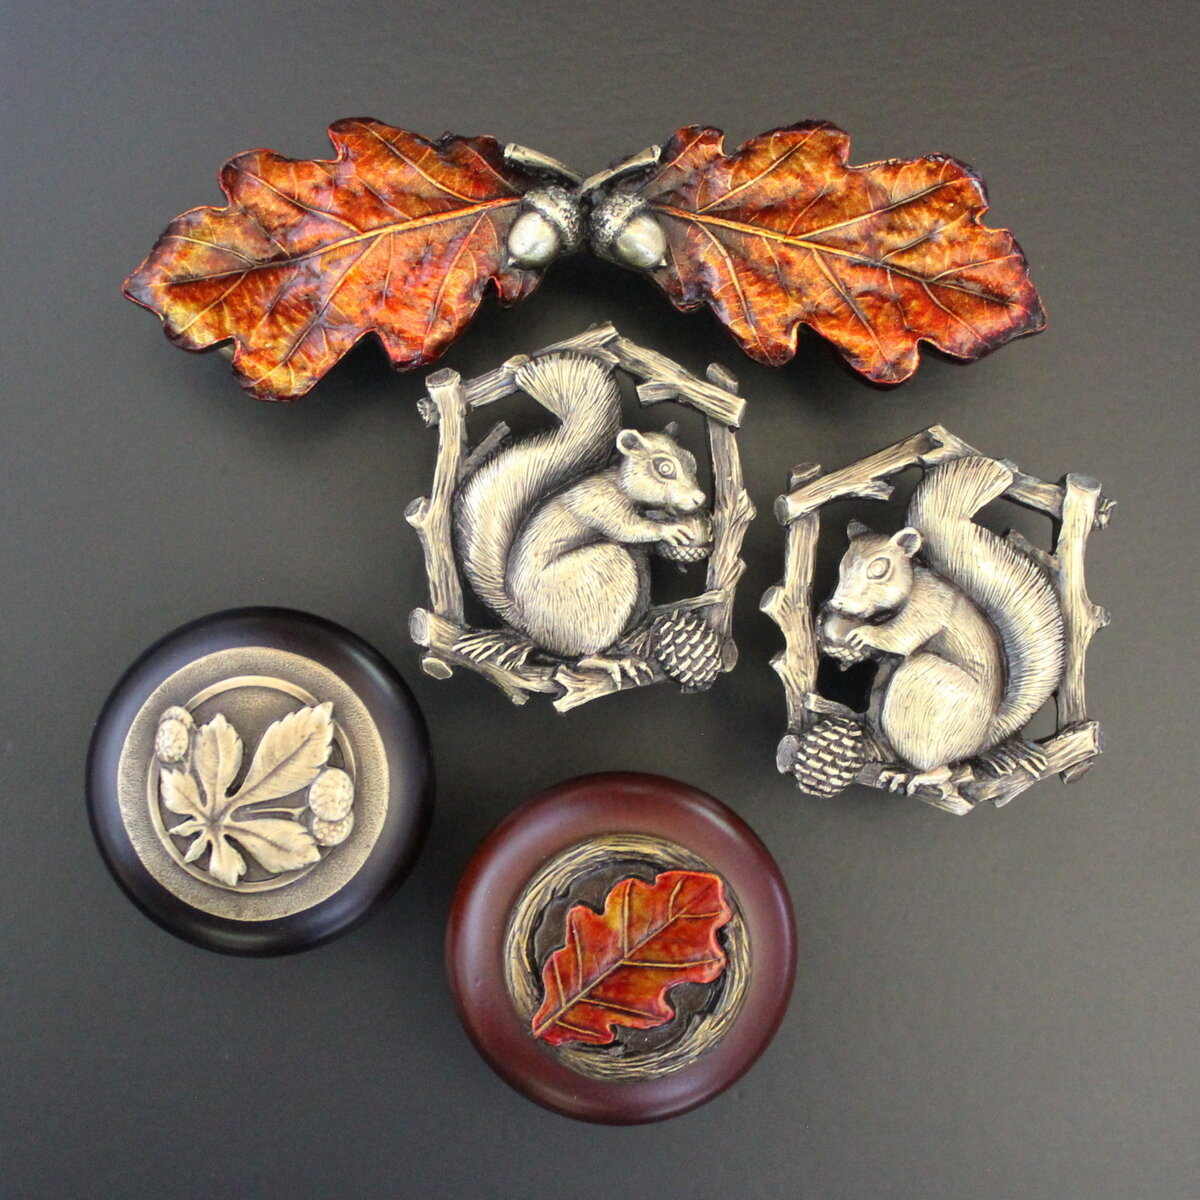 Incorporate Natural Elements - Think Fall Oak Leaf Pulls, Chestnut Wood Knobs, and Squirrel Knobs